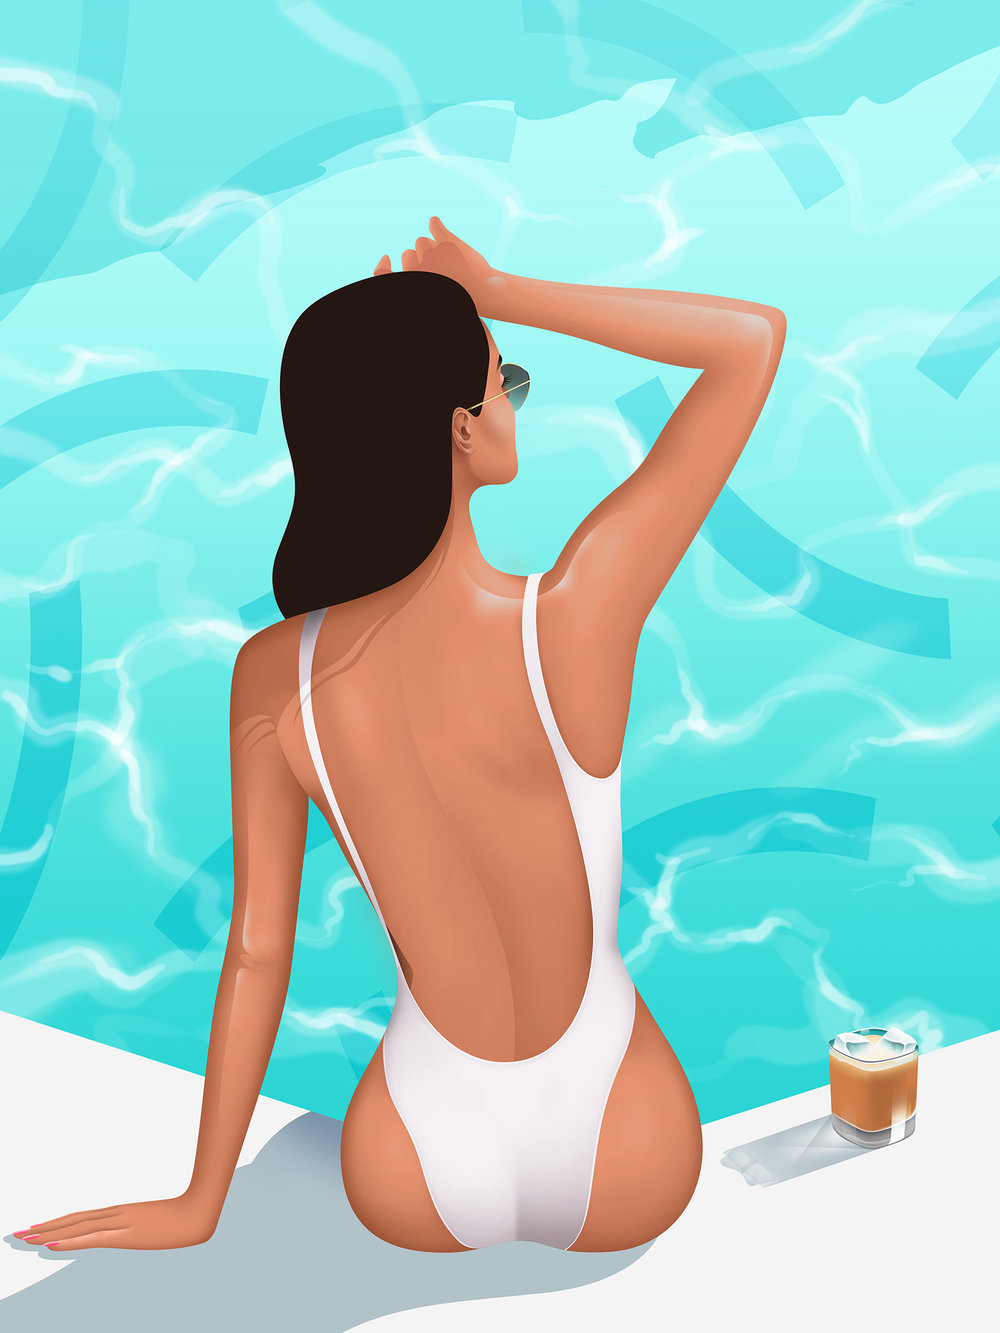 Lady in onepiece swimsuit enjoying Ice Coffee